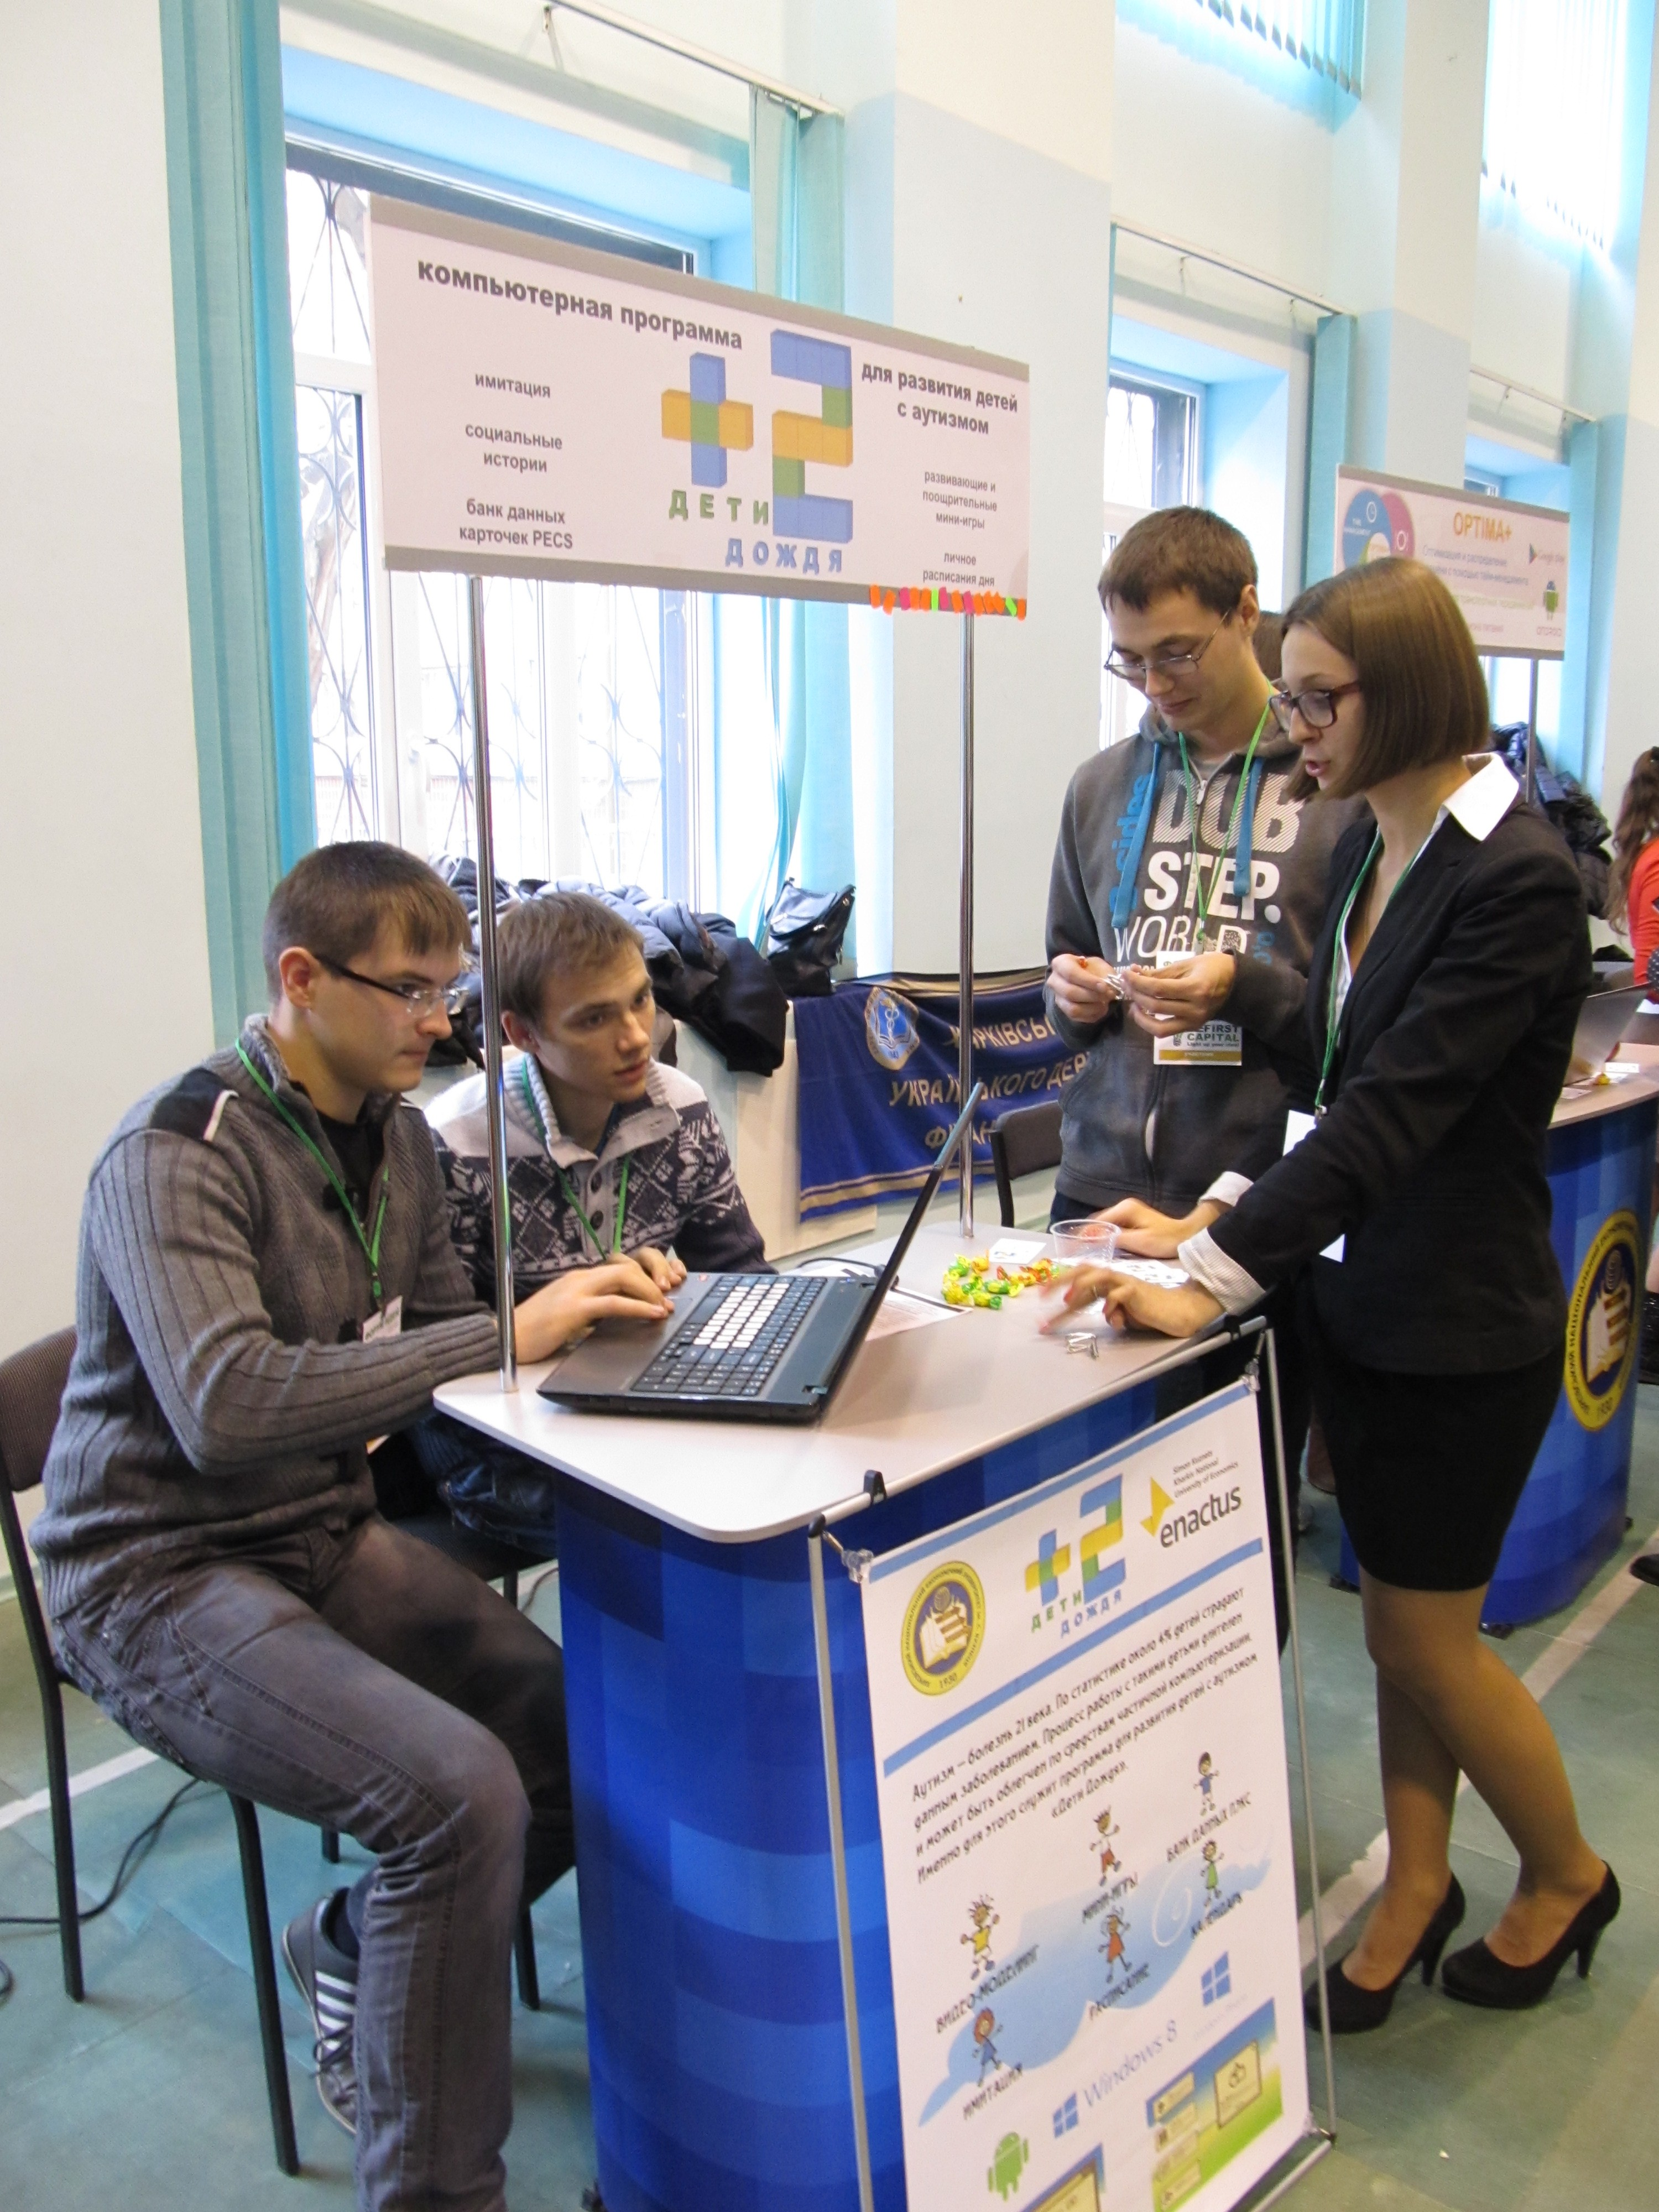 Exhibition Stand Projects : Second ideas forum at simon kuznets kharkiv national